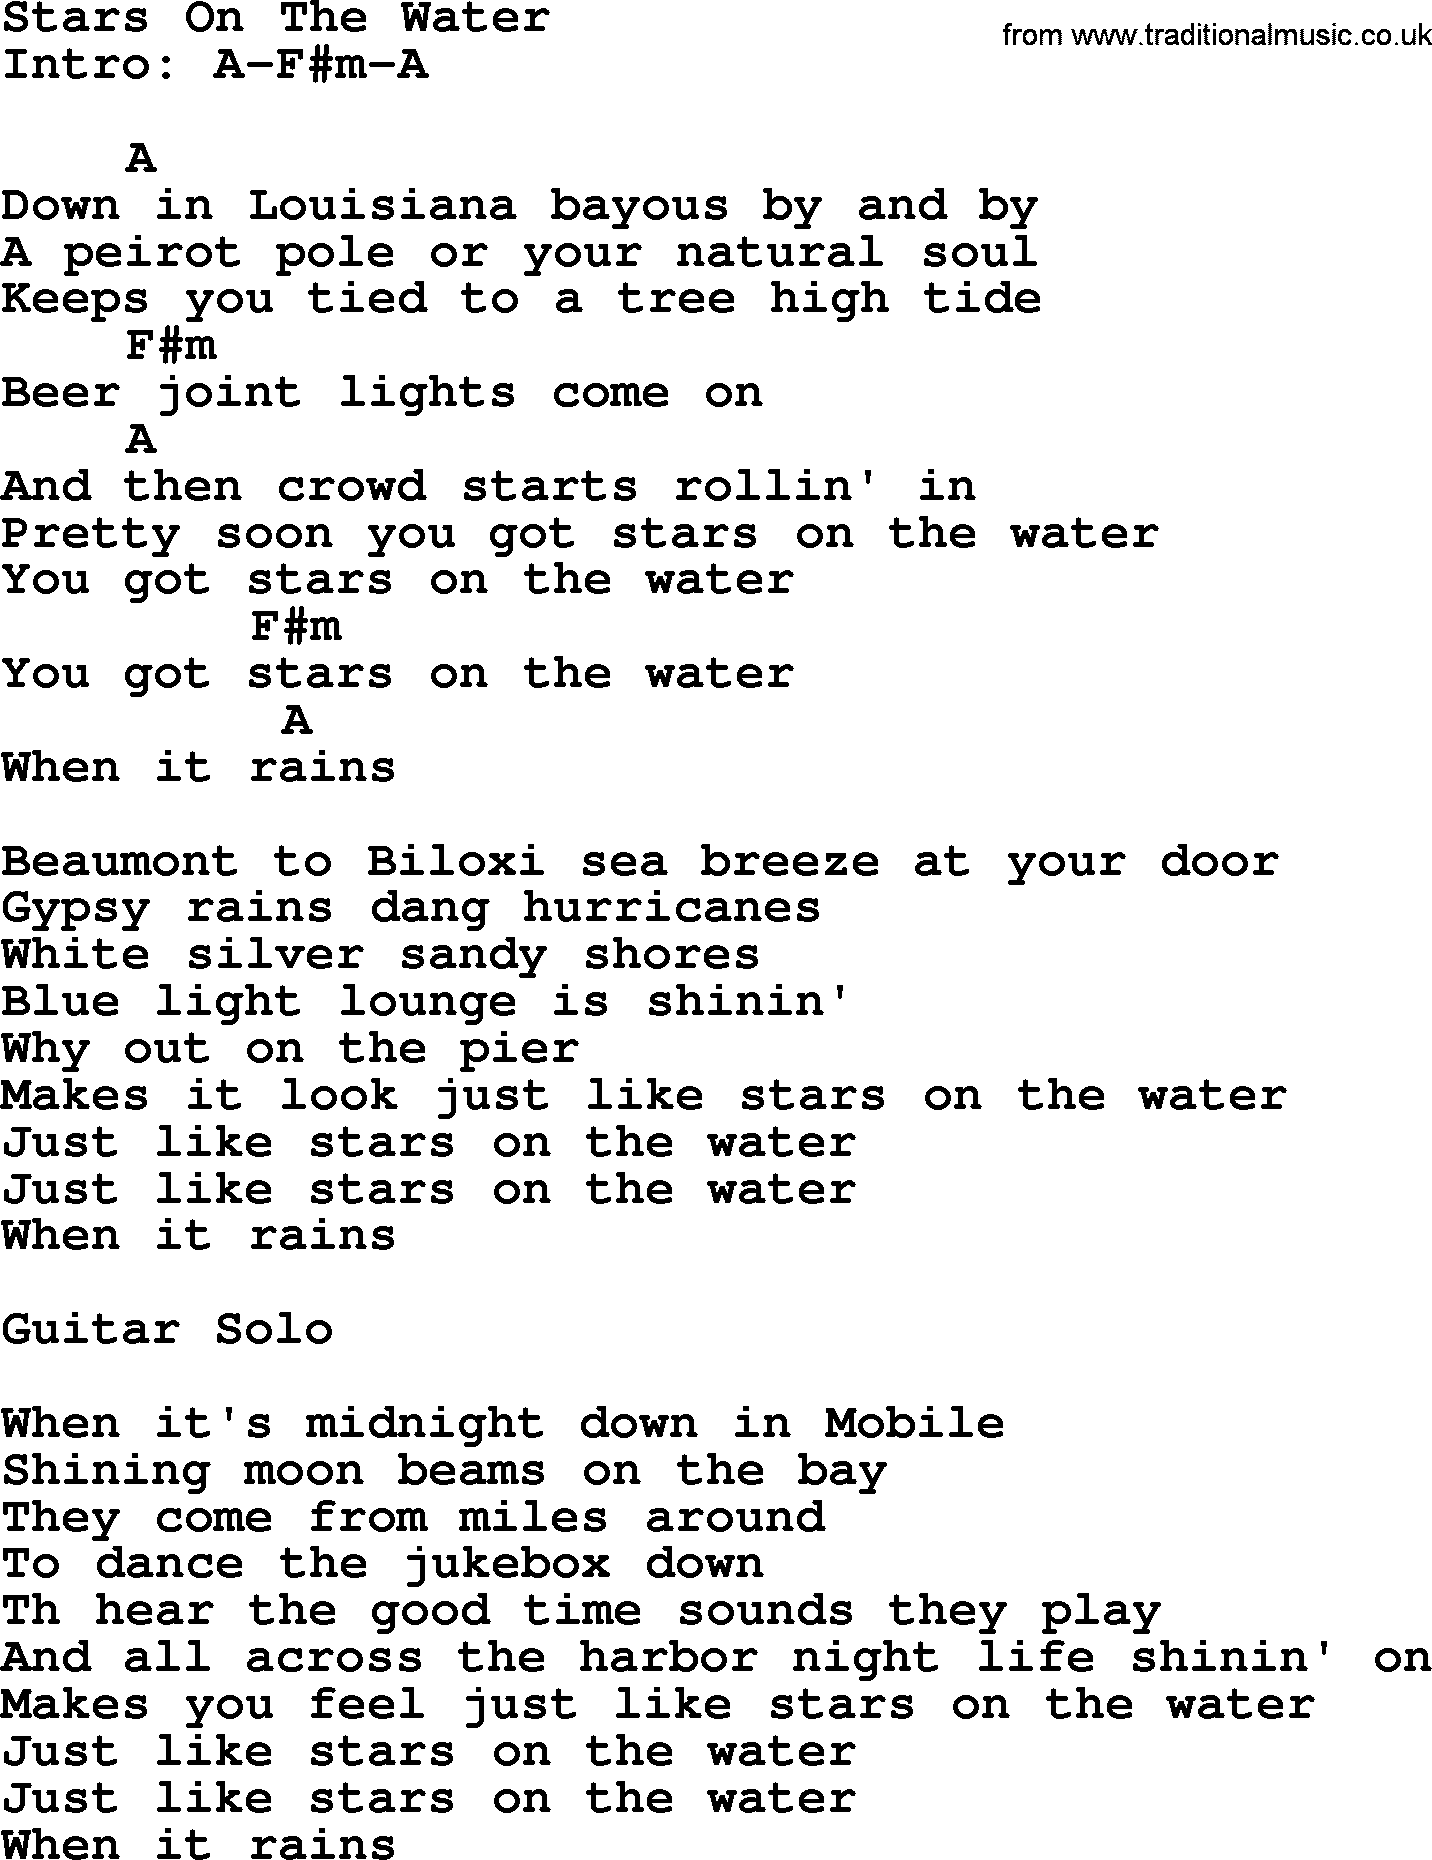 Stars on the water by george strait lyrics and chords george strait song stars on the water lyrics and chords hexwebz Gallery